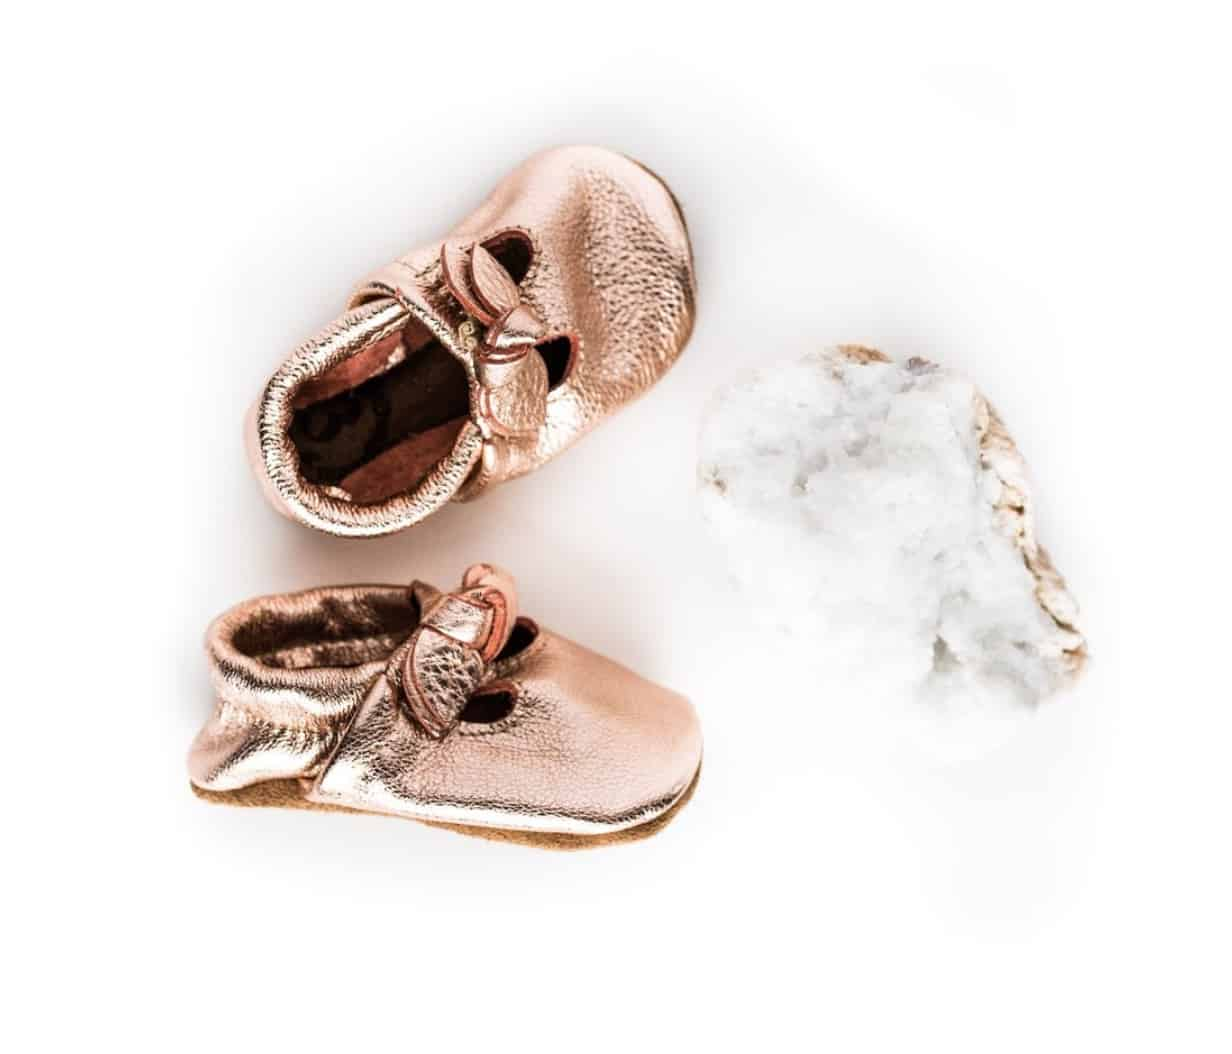 Sugarloaf Bow rose gold T-straps baby shoes